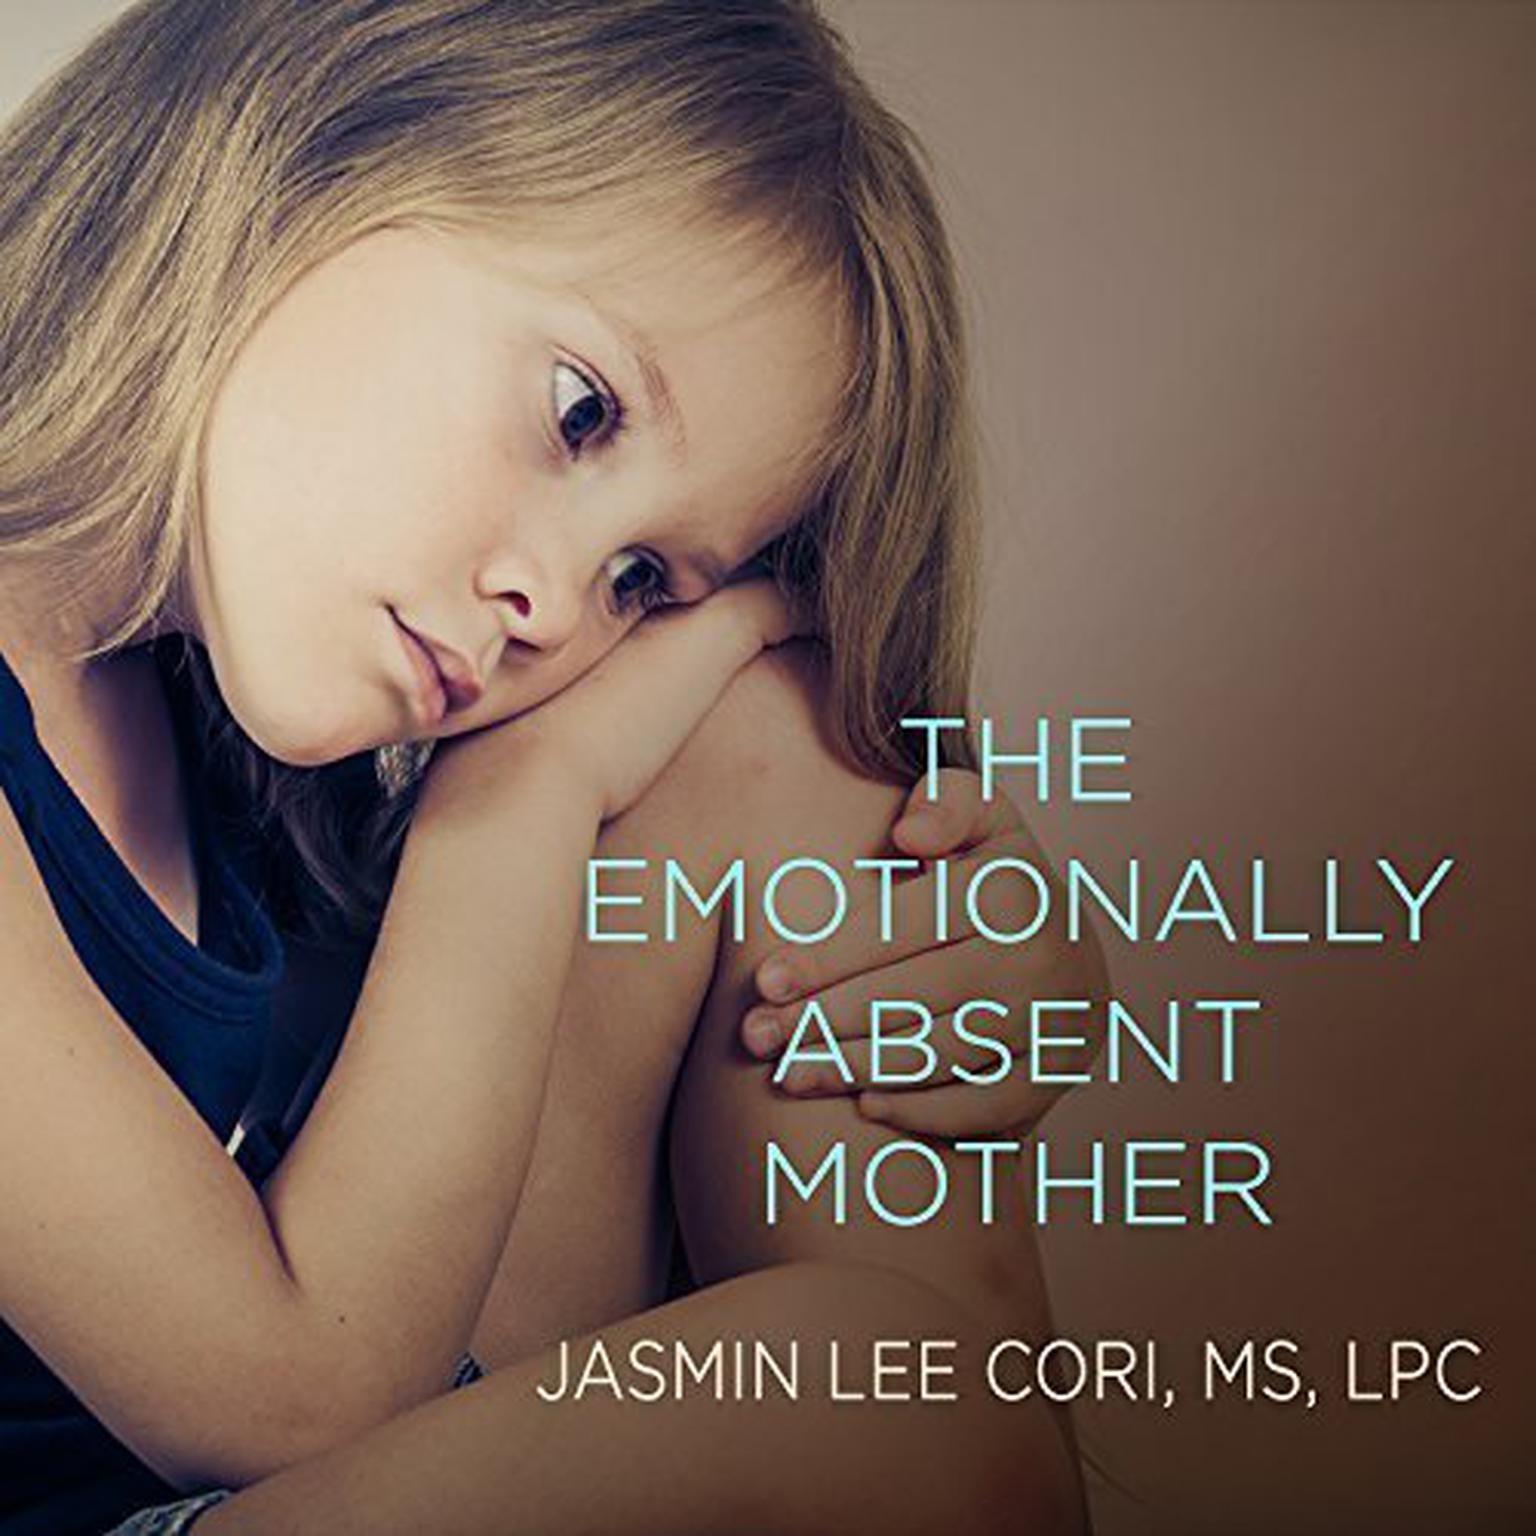 Printable The Emotionally Absent Mother: How to Recognize and Heal the Invisible Effects of Childhood Emotional Neglect, Second Edition Audiobook Cover Art